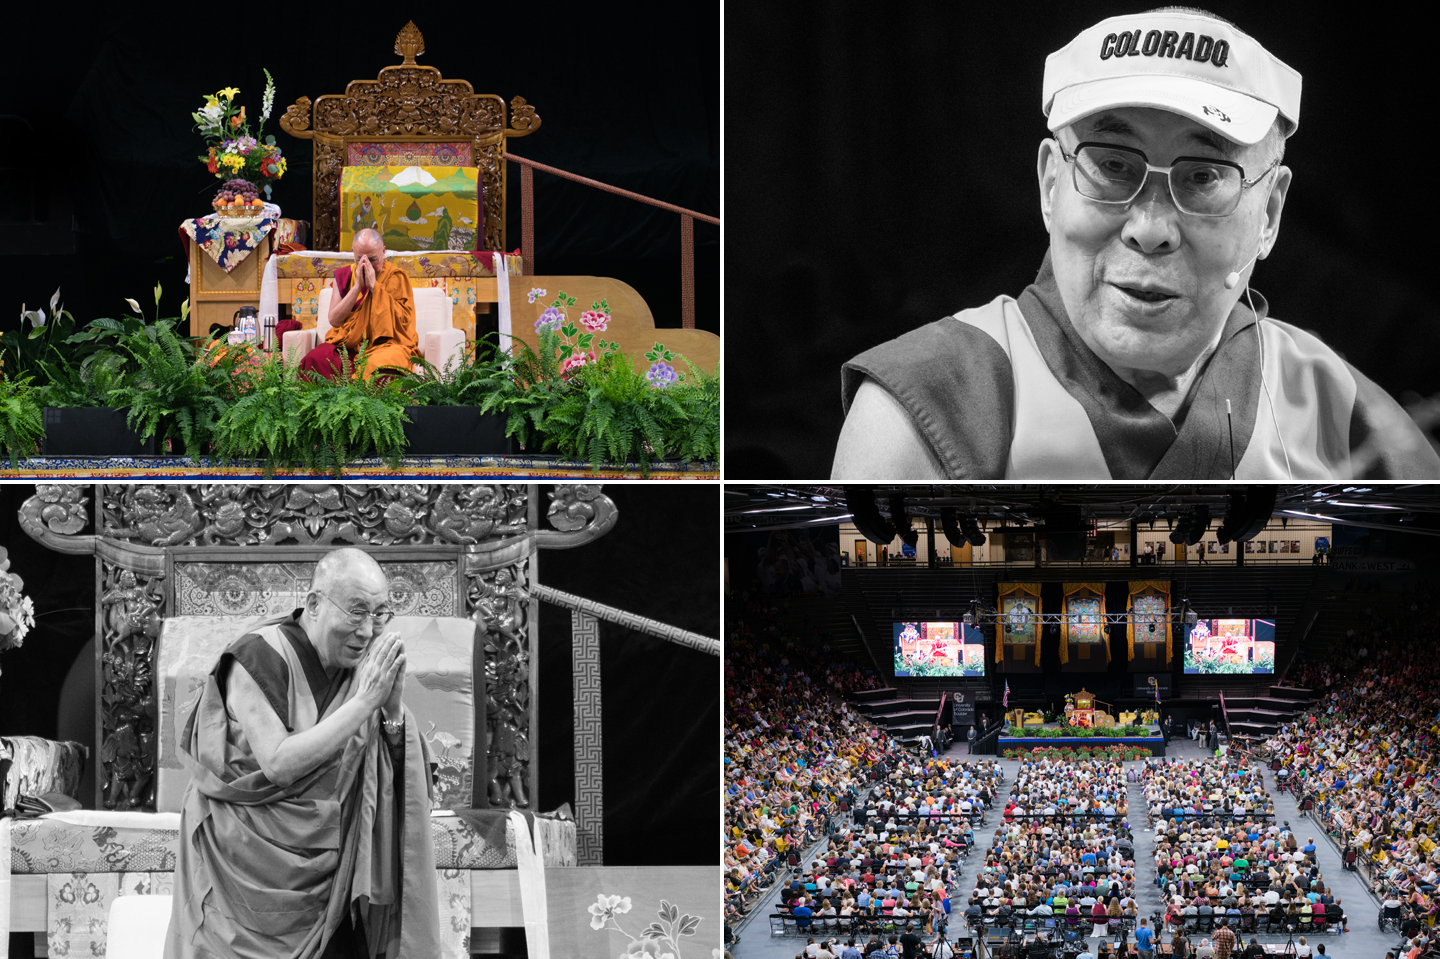 His Holiness the 14th Dalai Lama visits Boulder, Colorado